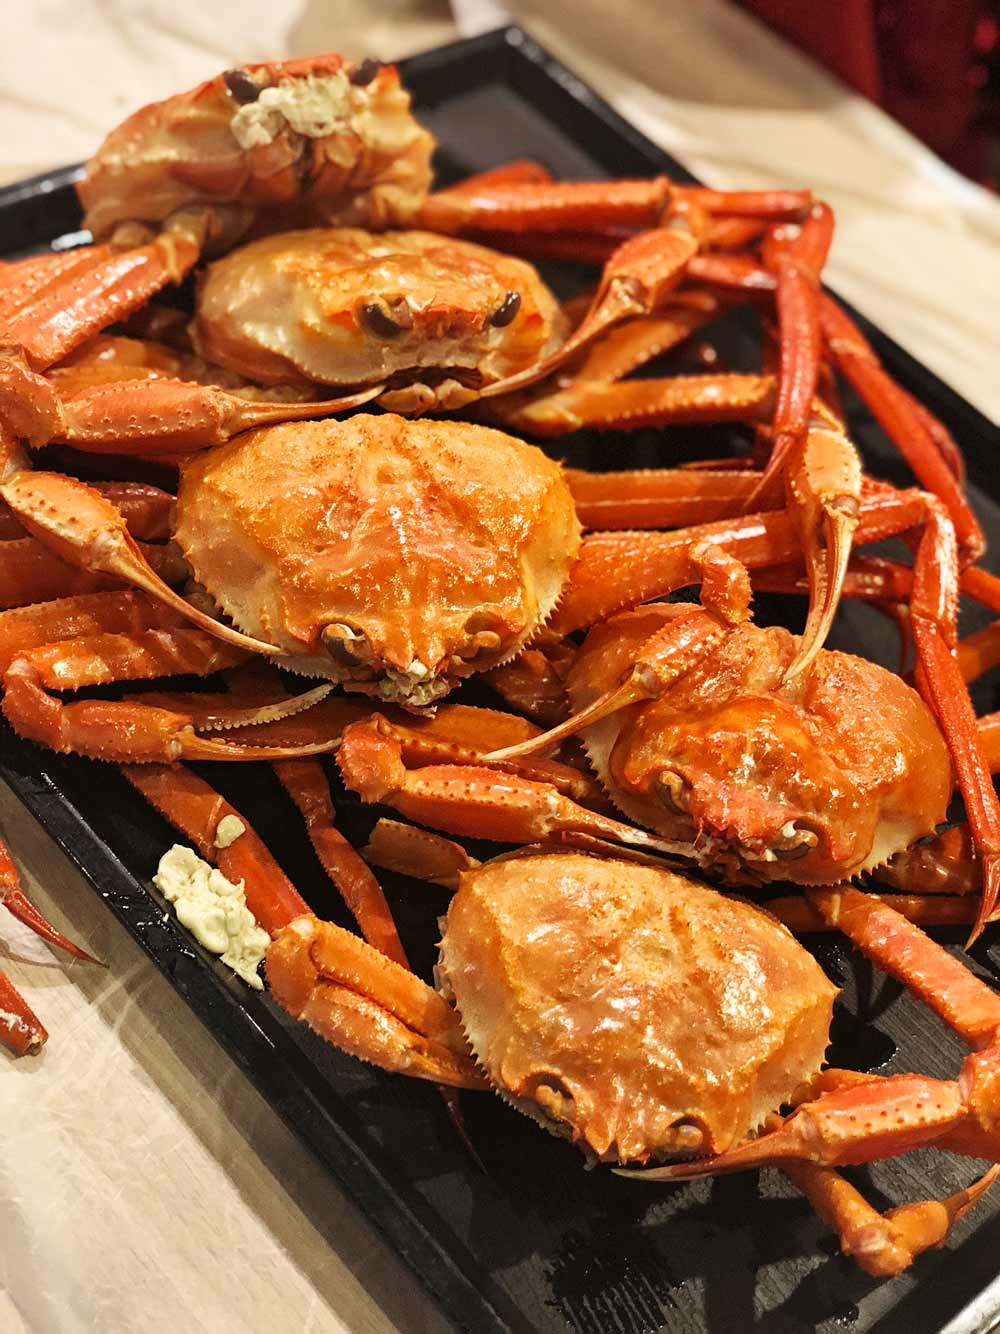 Daege Jaldoneneun Jib (All You Can Eat Crabs) - Why Seoul is a Perfect City to go for a Girl's Trip